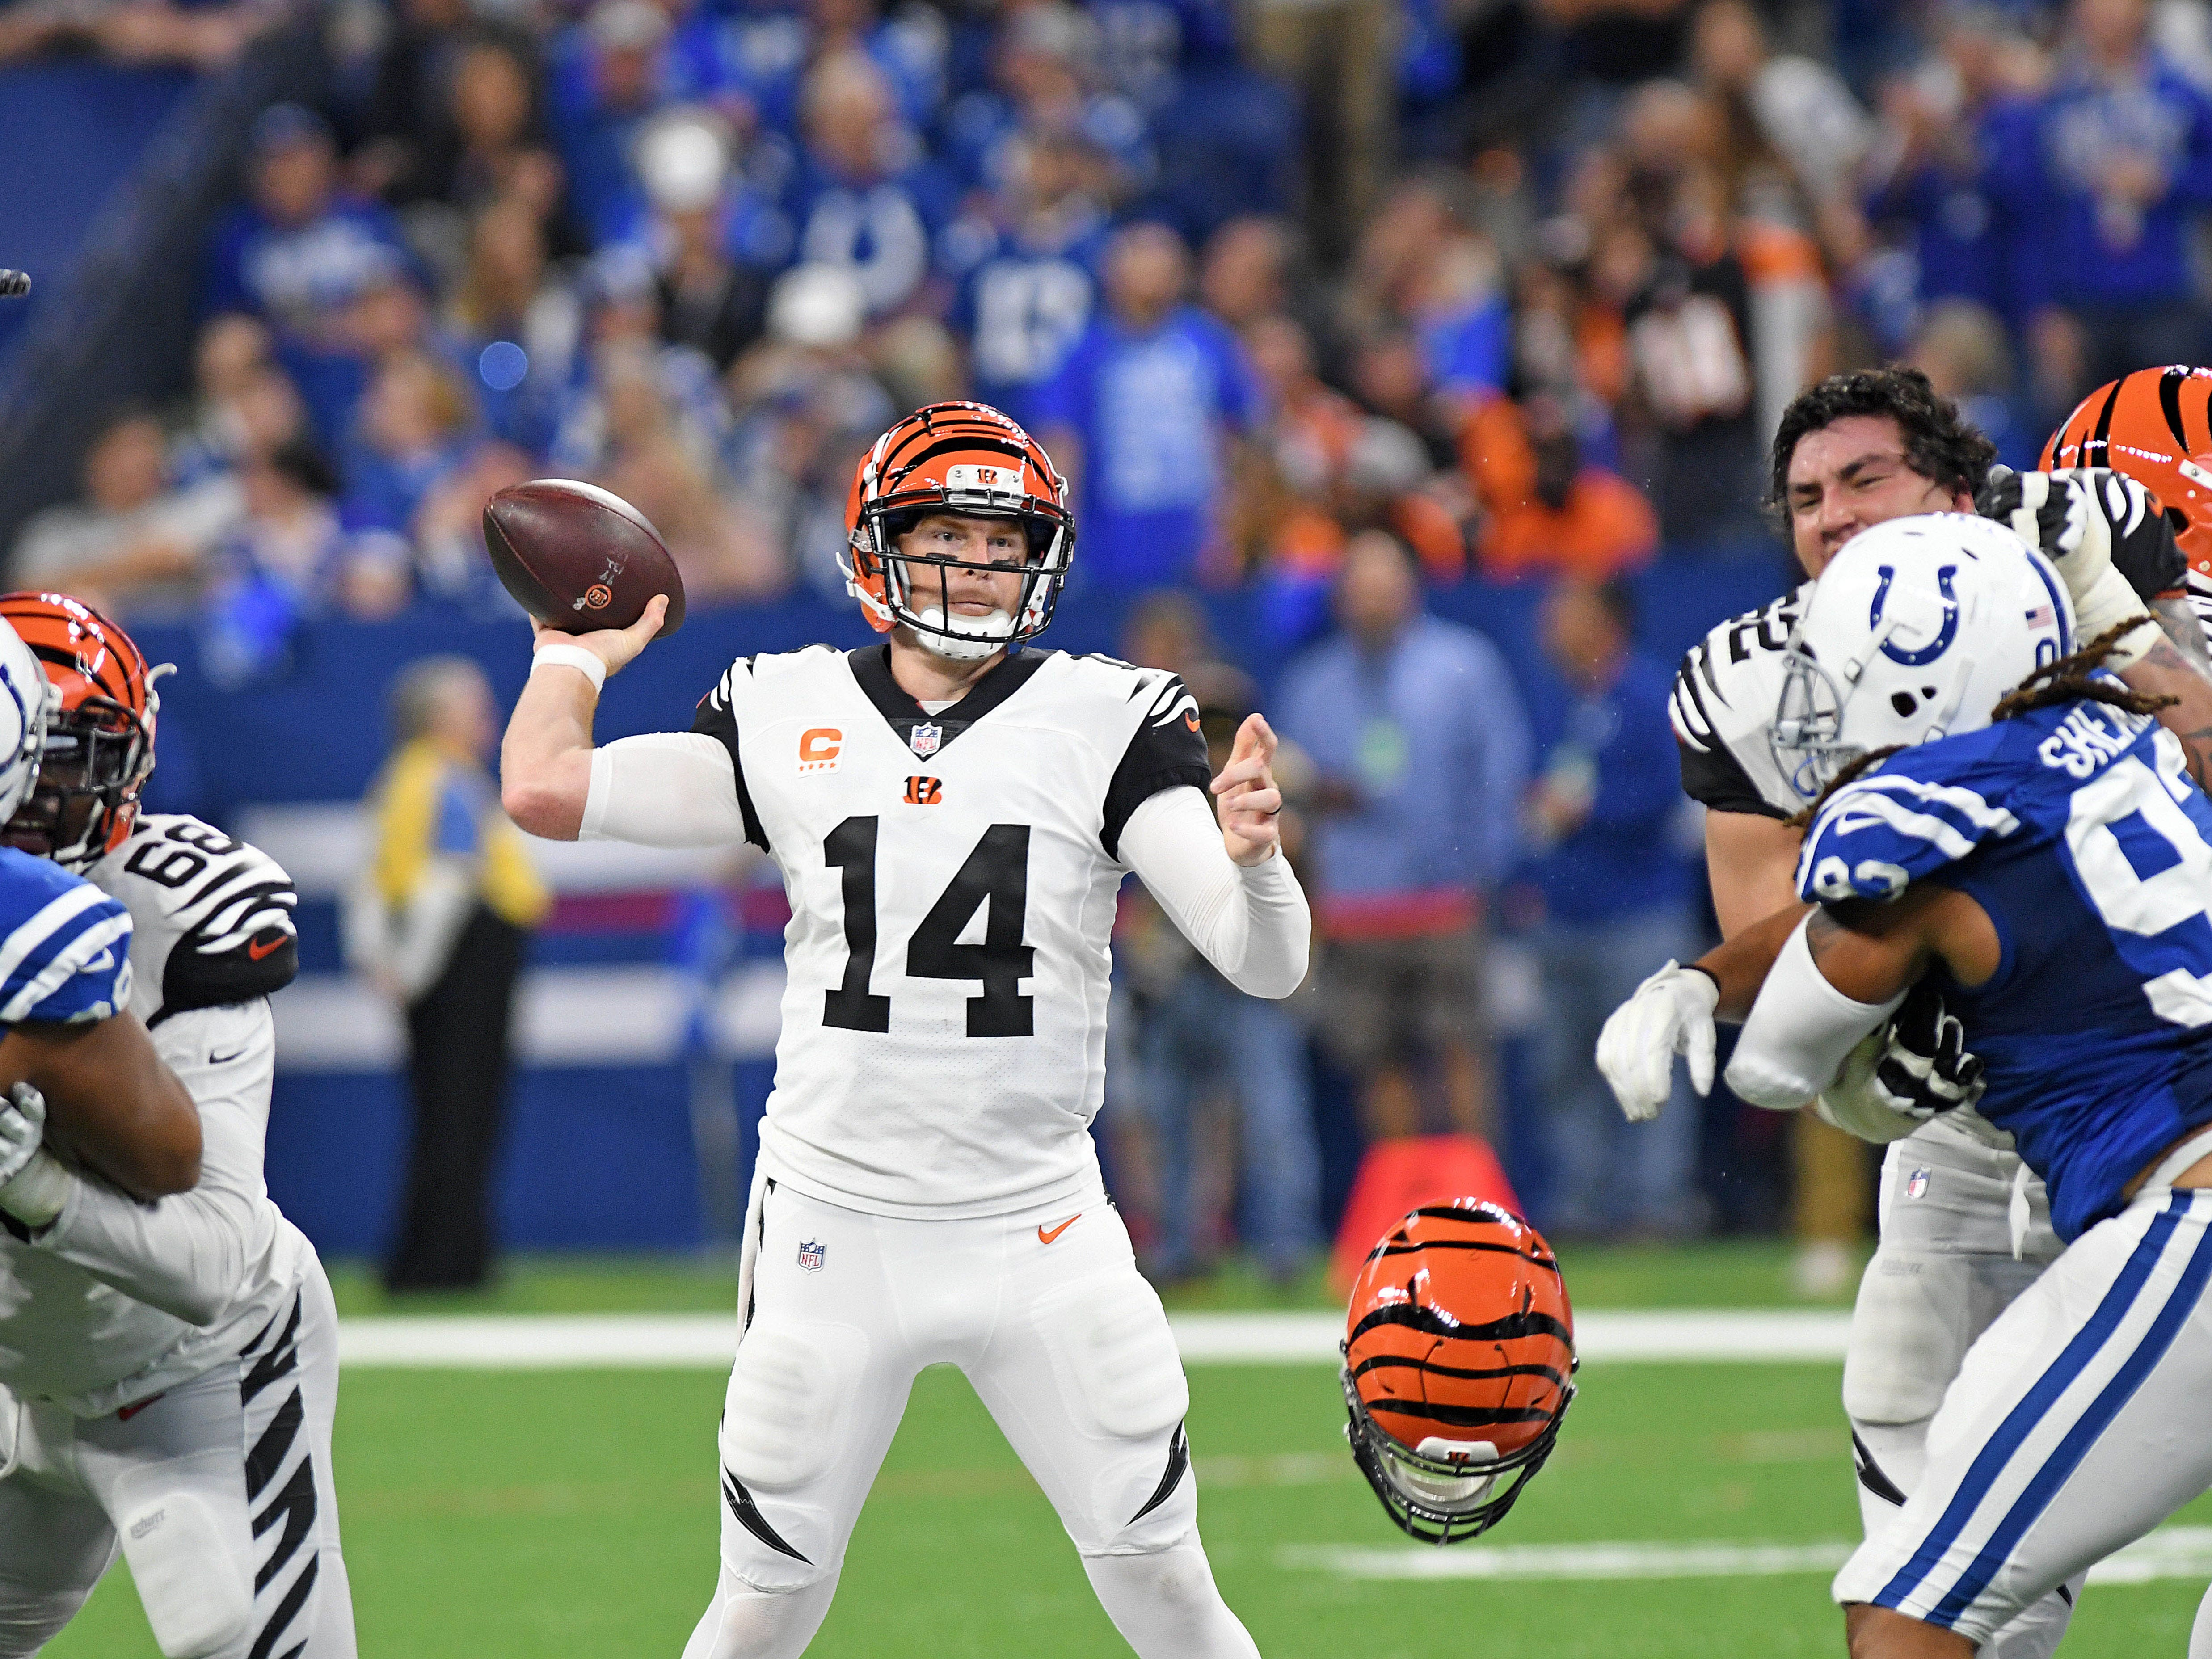 Sep 9, 2018; Indianapolis, IN, USA; Cincinnati Bengals quarterback Andy Dalton (14) drops back to pass in the second half against the Indianapolis Colts at Lucas Oil Stadium. Mandatory Credit: Thomas J. Russo-USA TODAY Sports